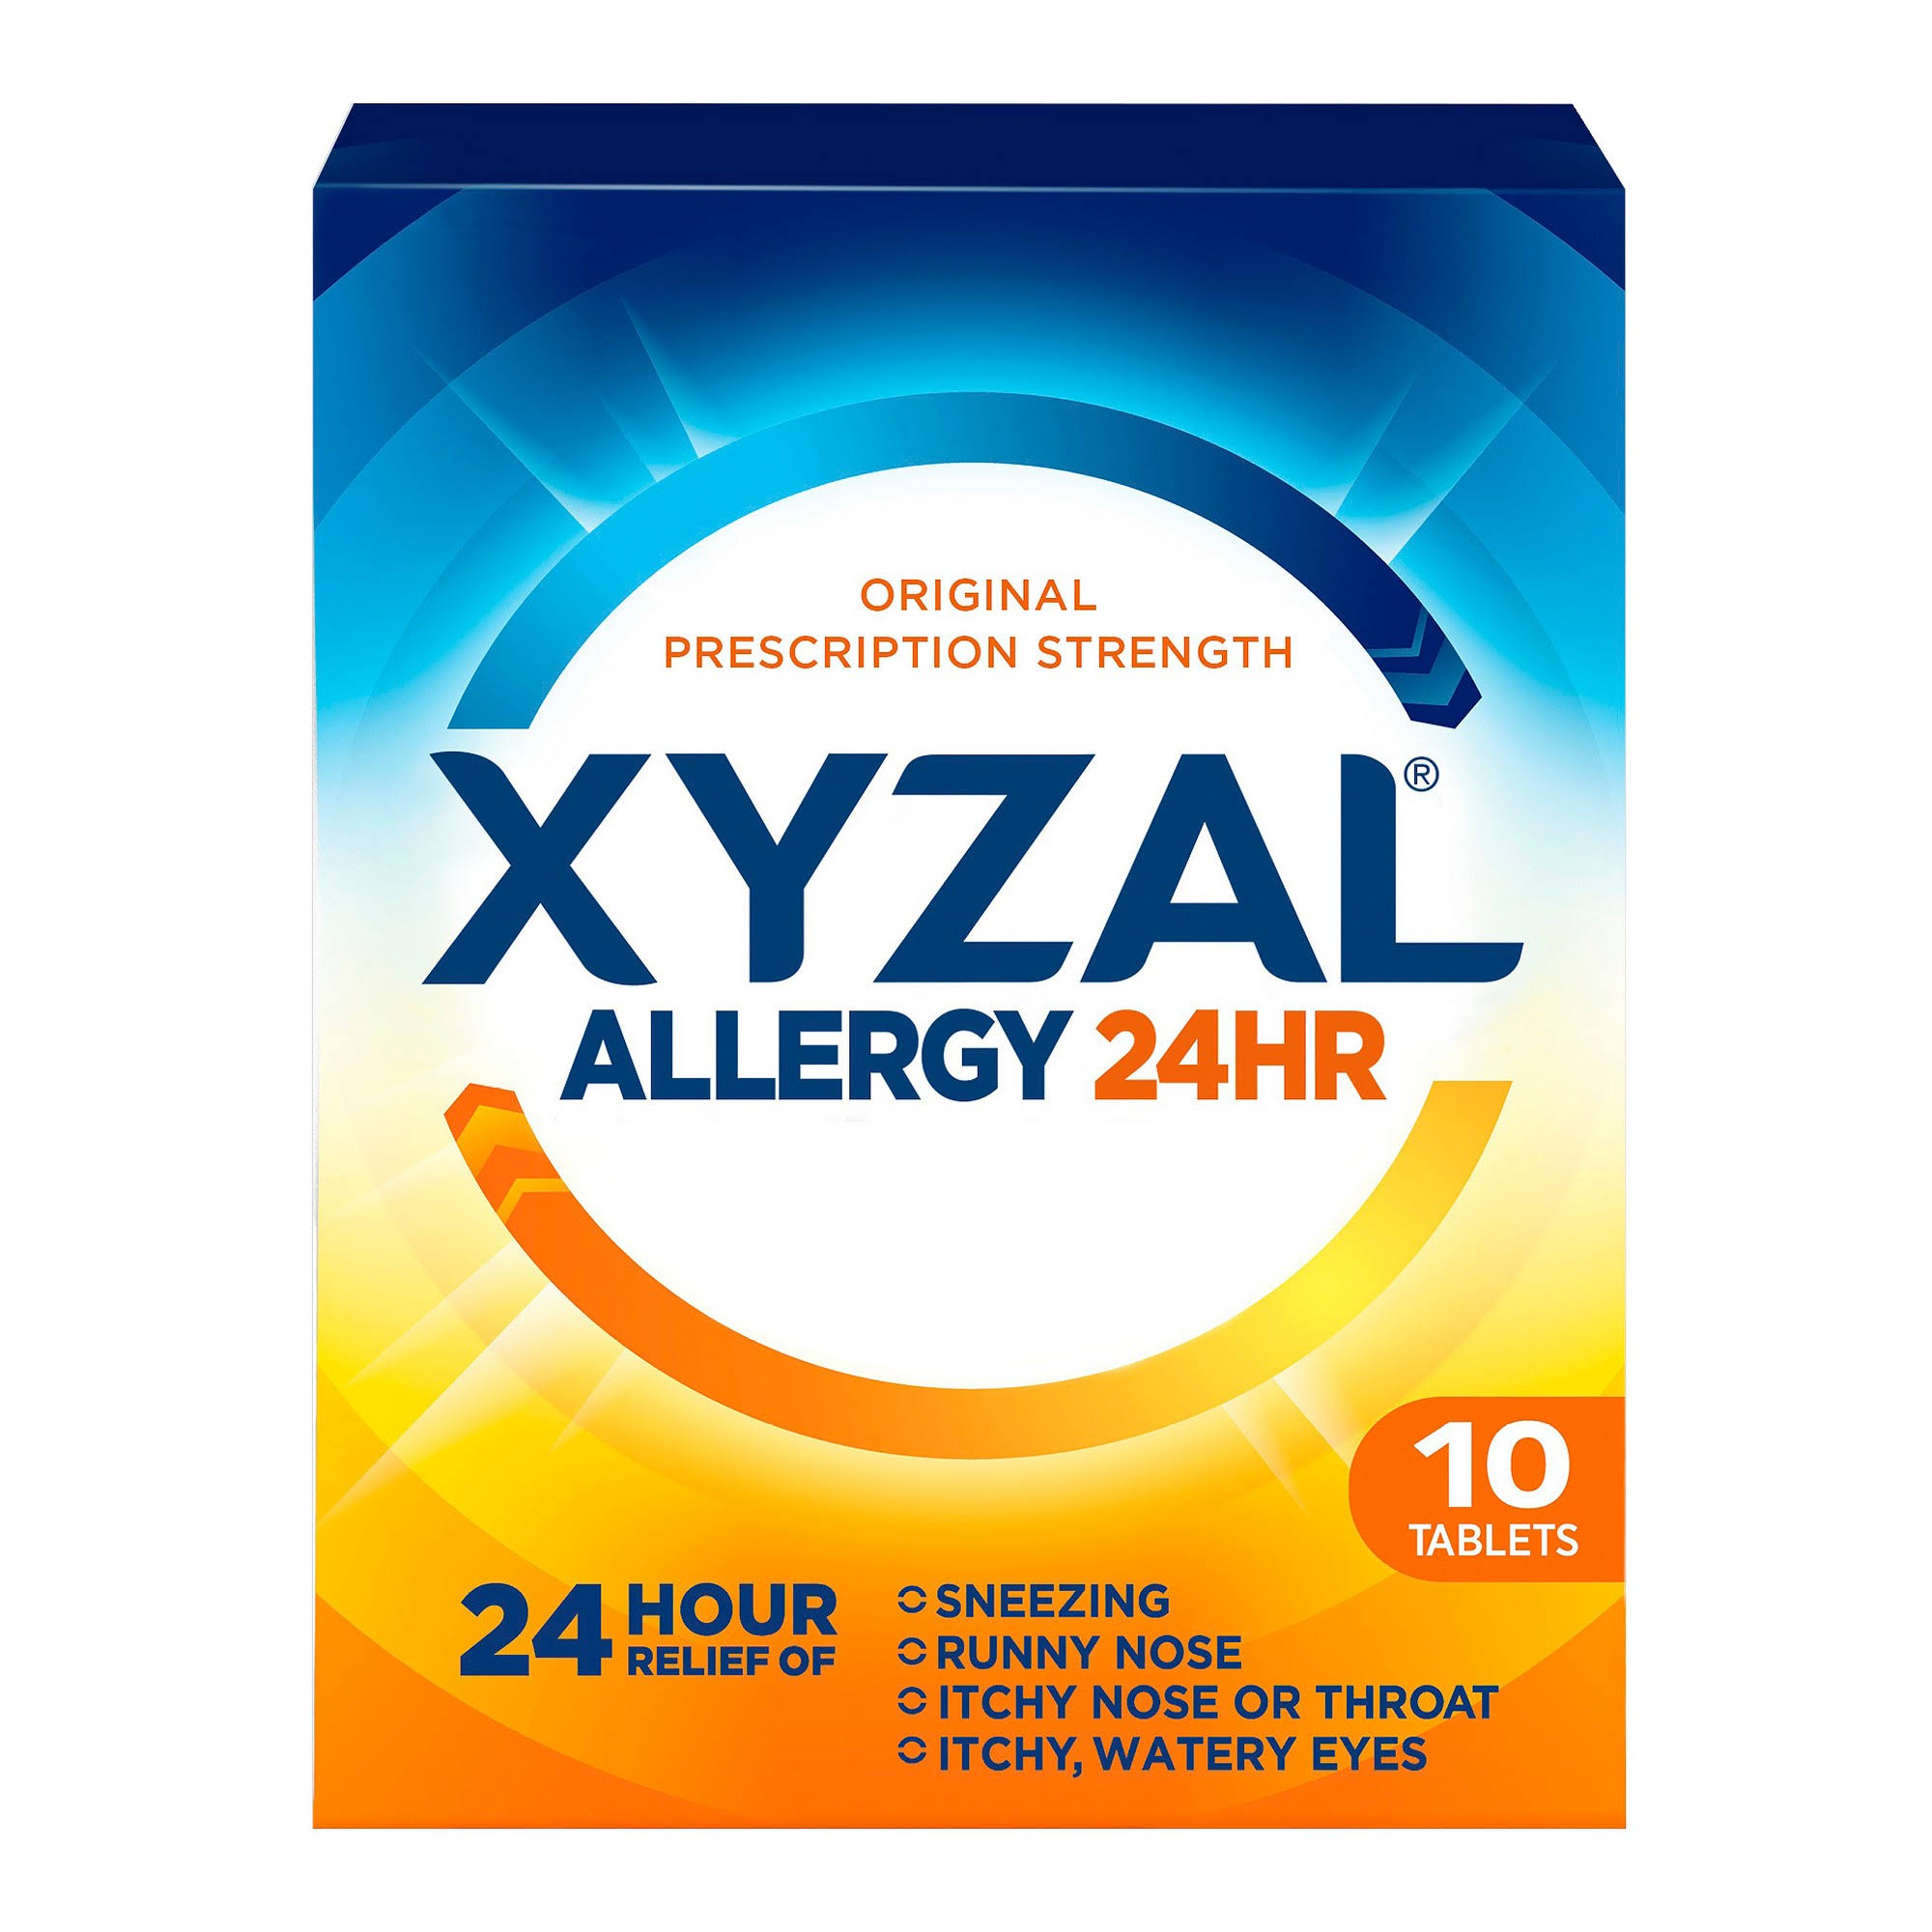 Xyzal 24 Hour Allergy Relief Tablets - 10 Tablets